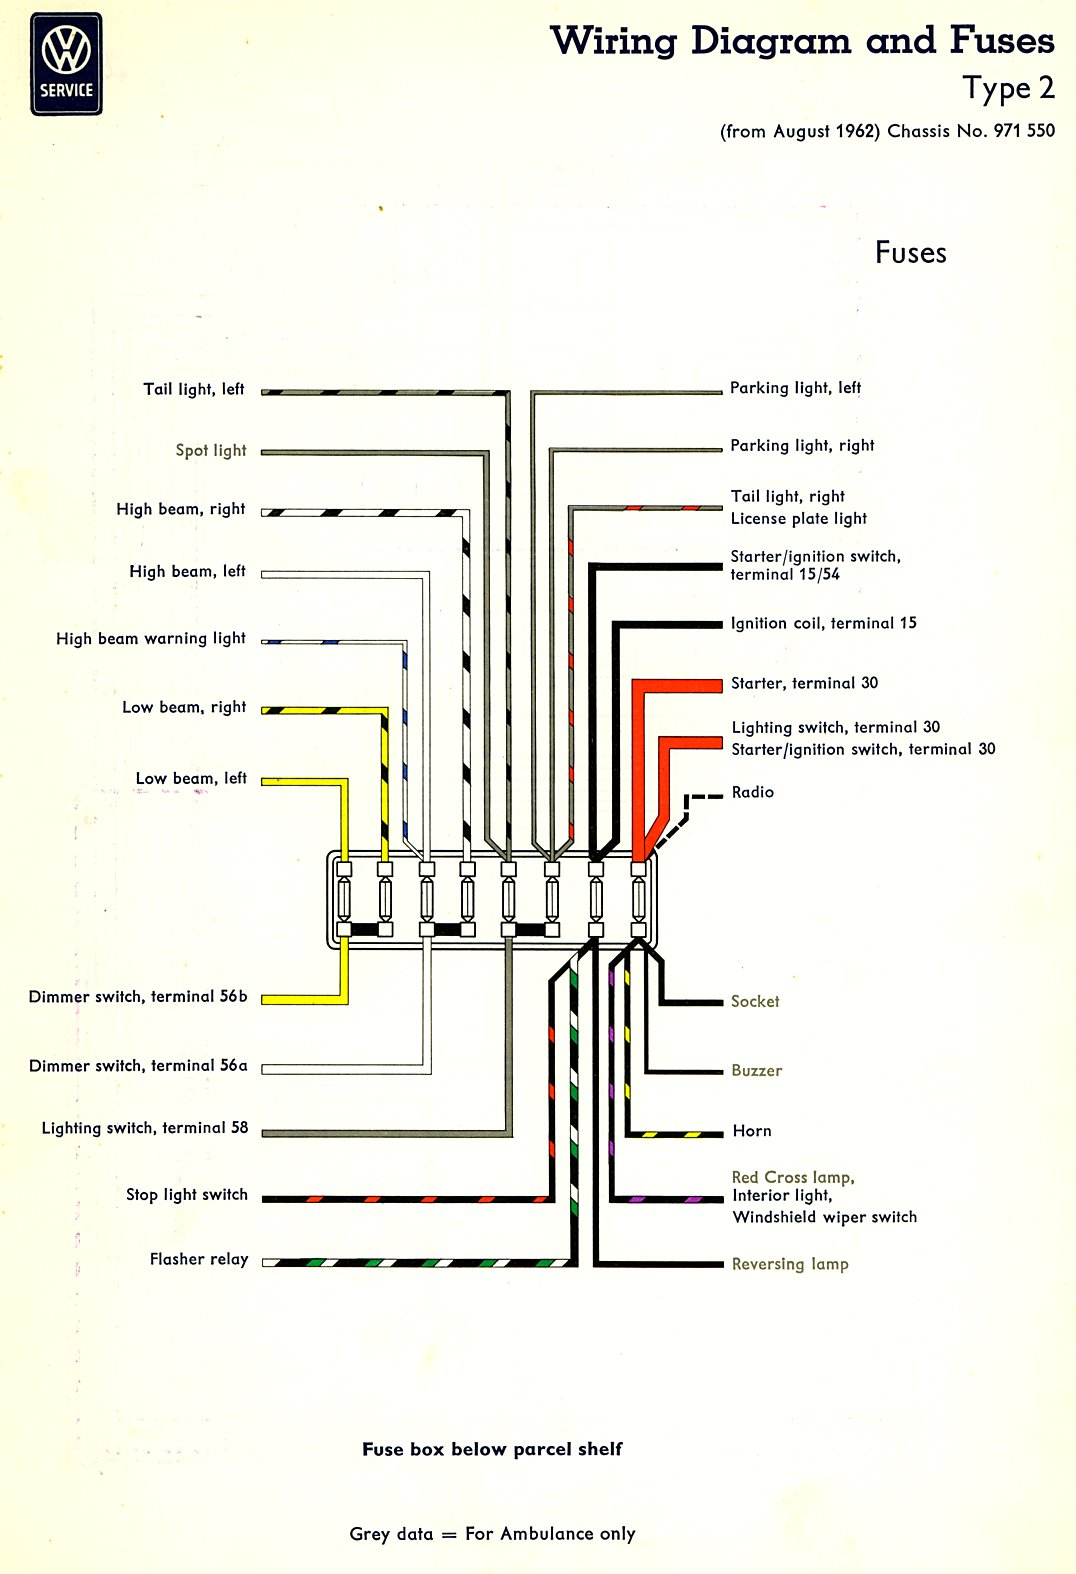 Fuse Box Wiring Diagrams Another Blog About Diagram Narva Thesamba Com Type 2 Rh Car